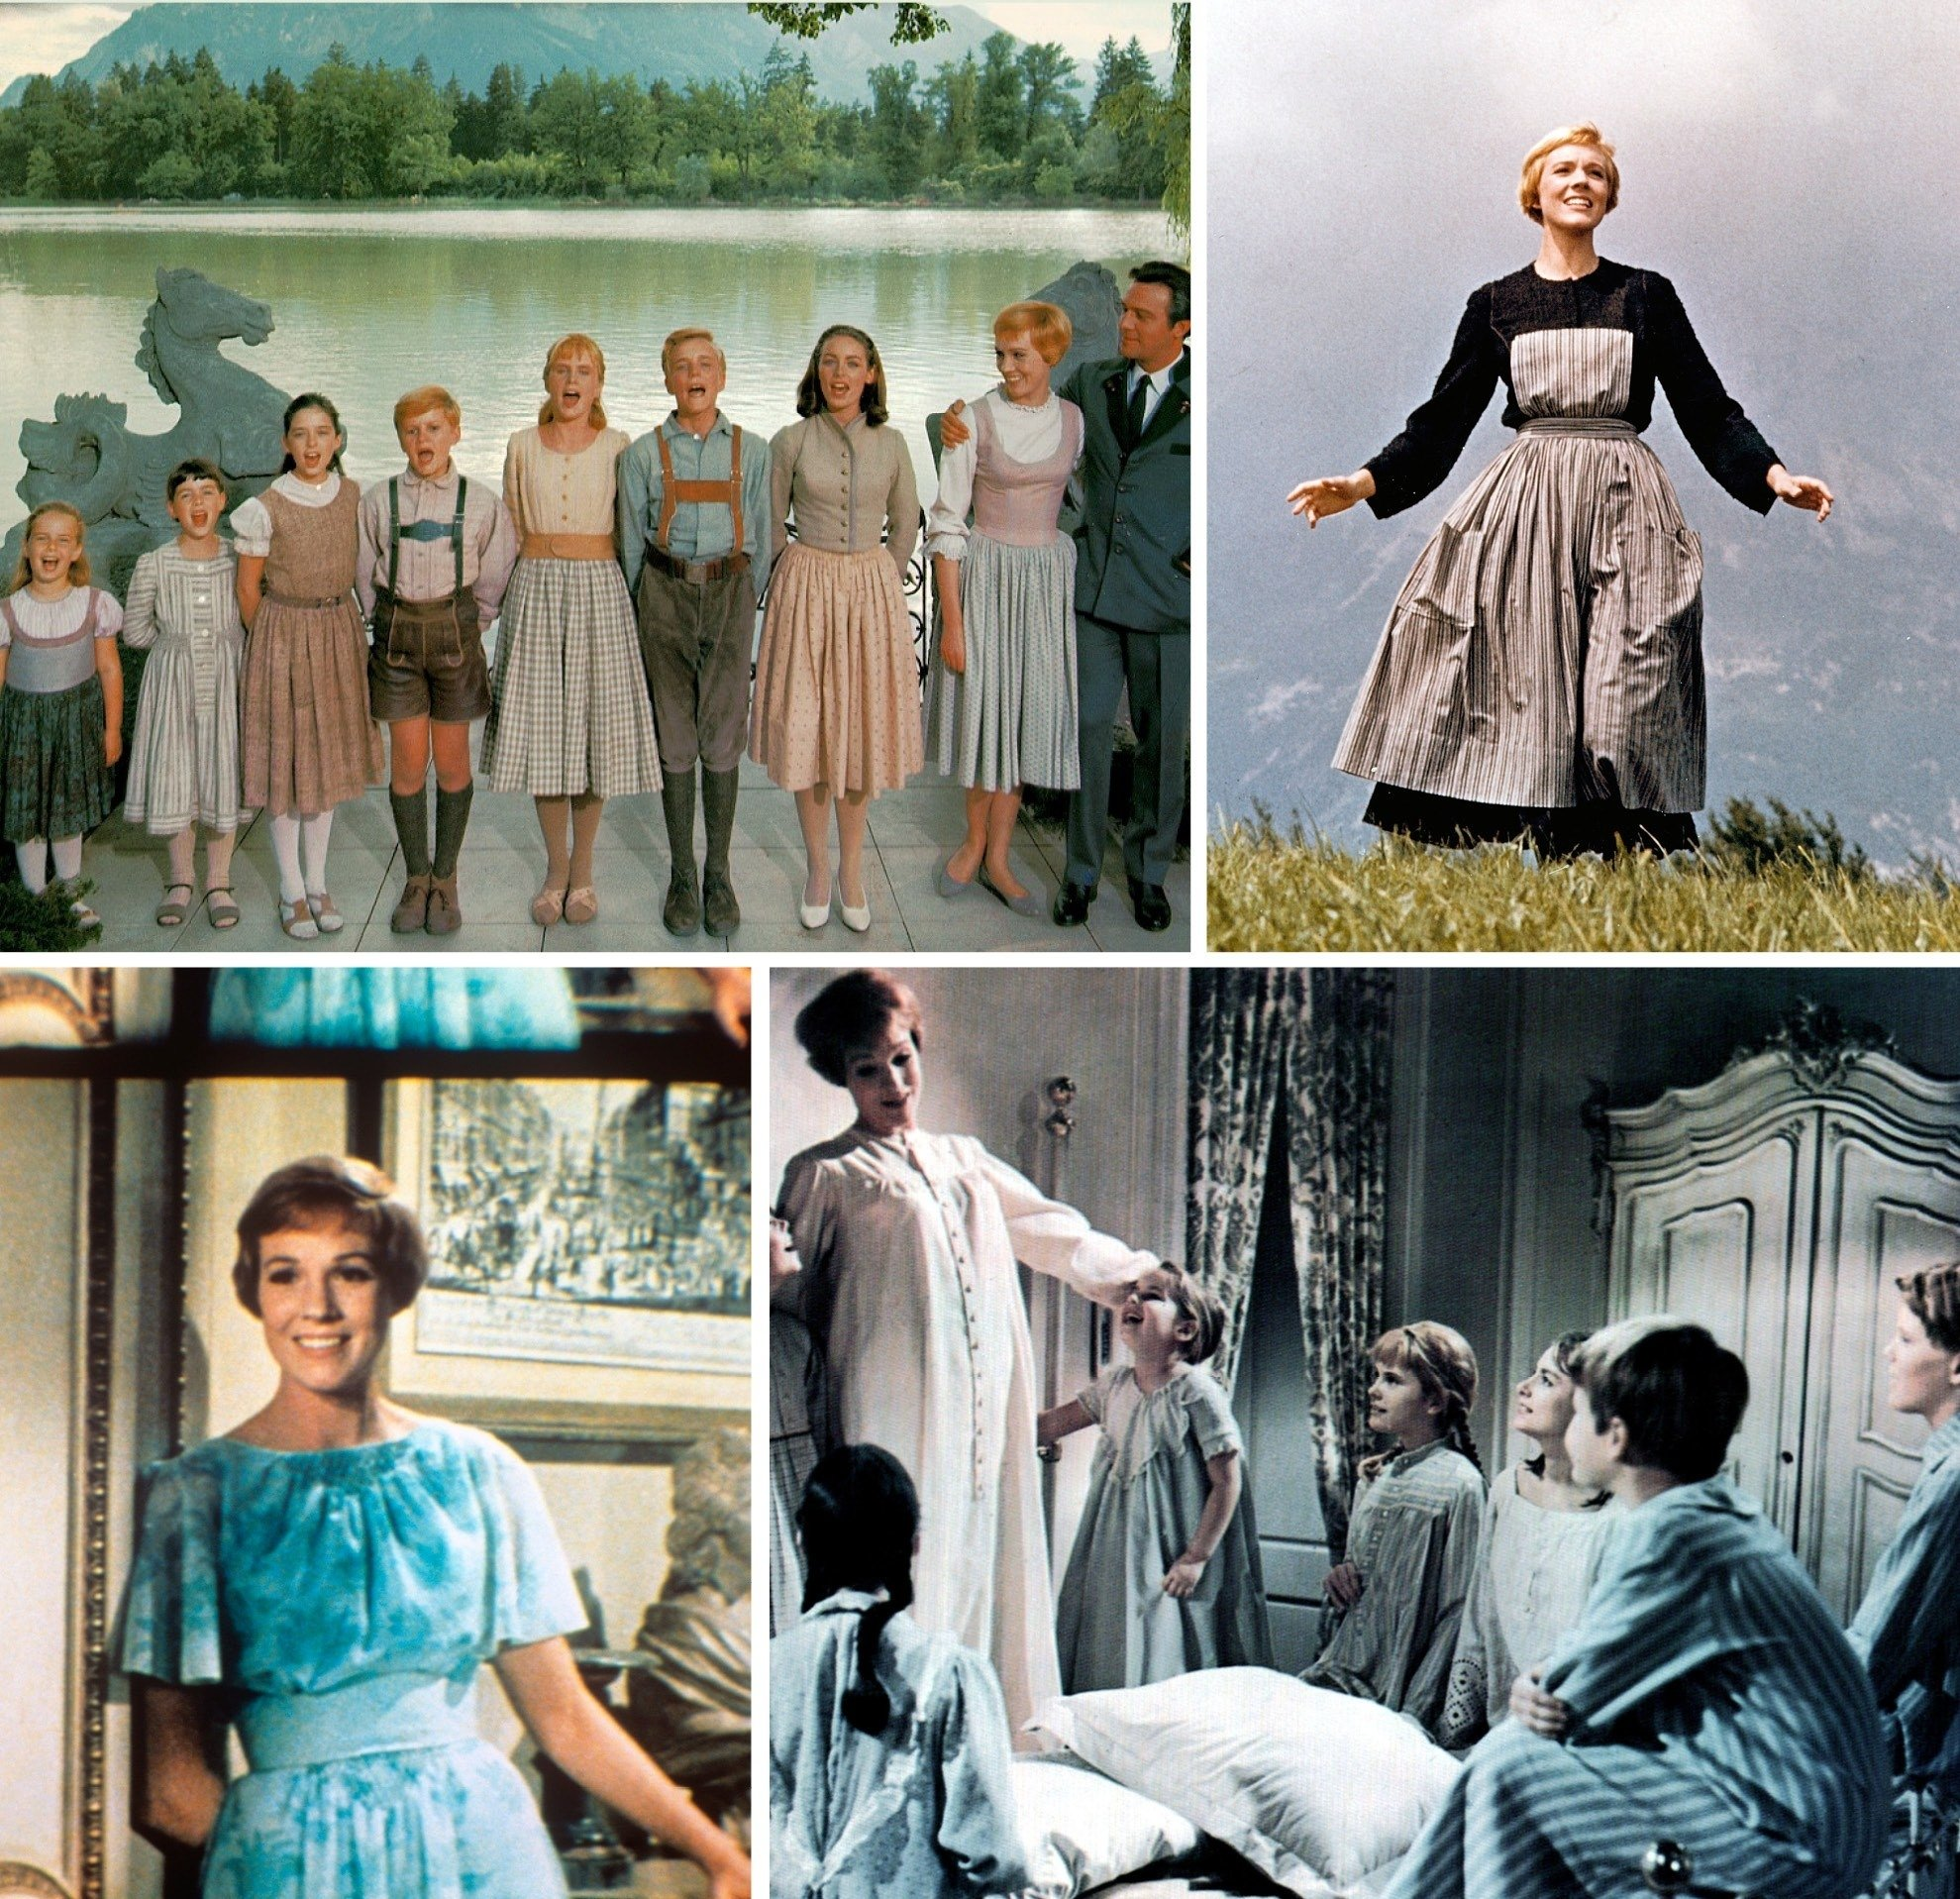 10 Most Recommended Sound Of Music Costume Ideas julie andrews wedding dress sound of music wedding dress wedding 2021